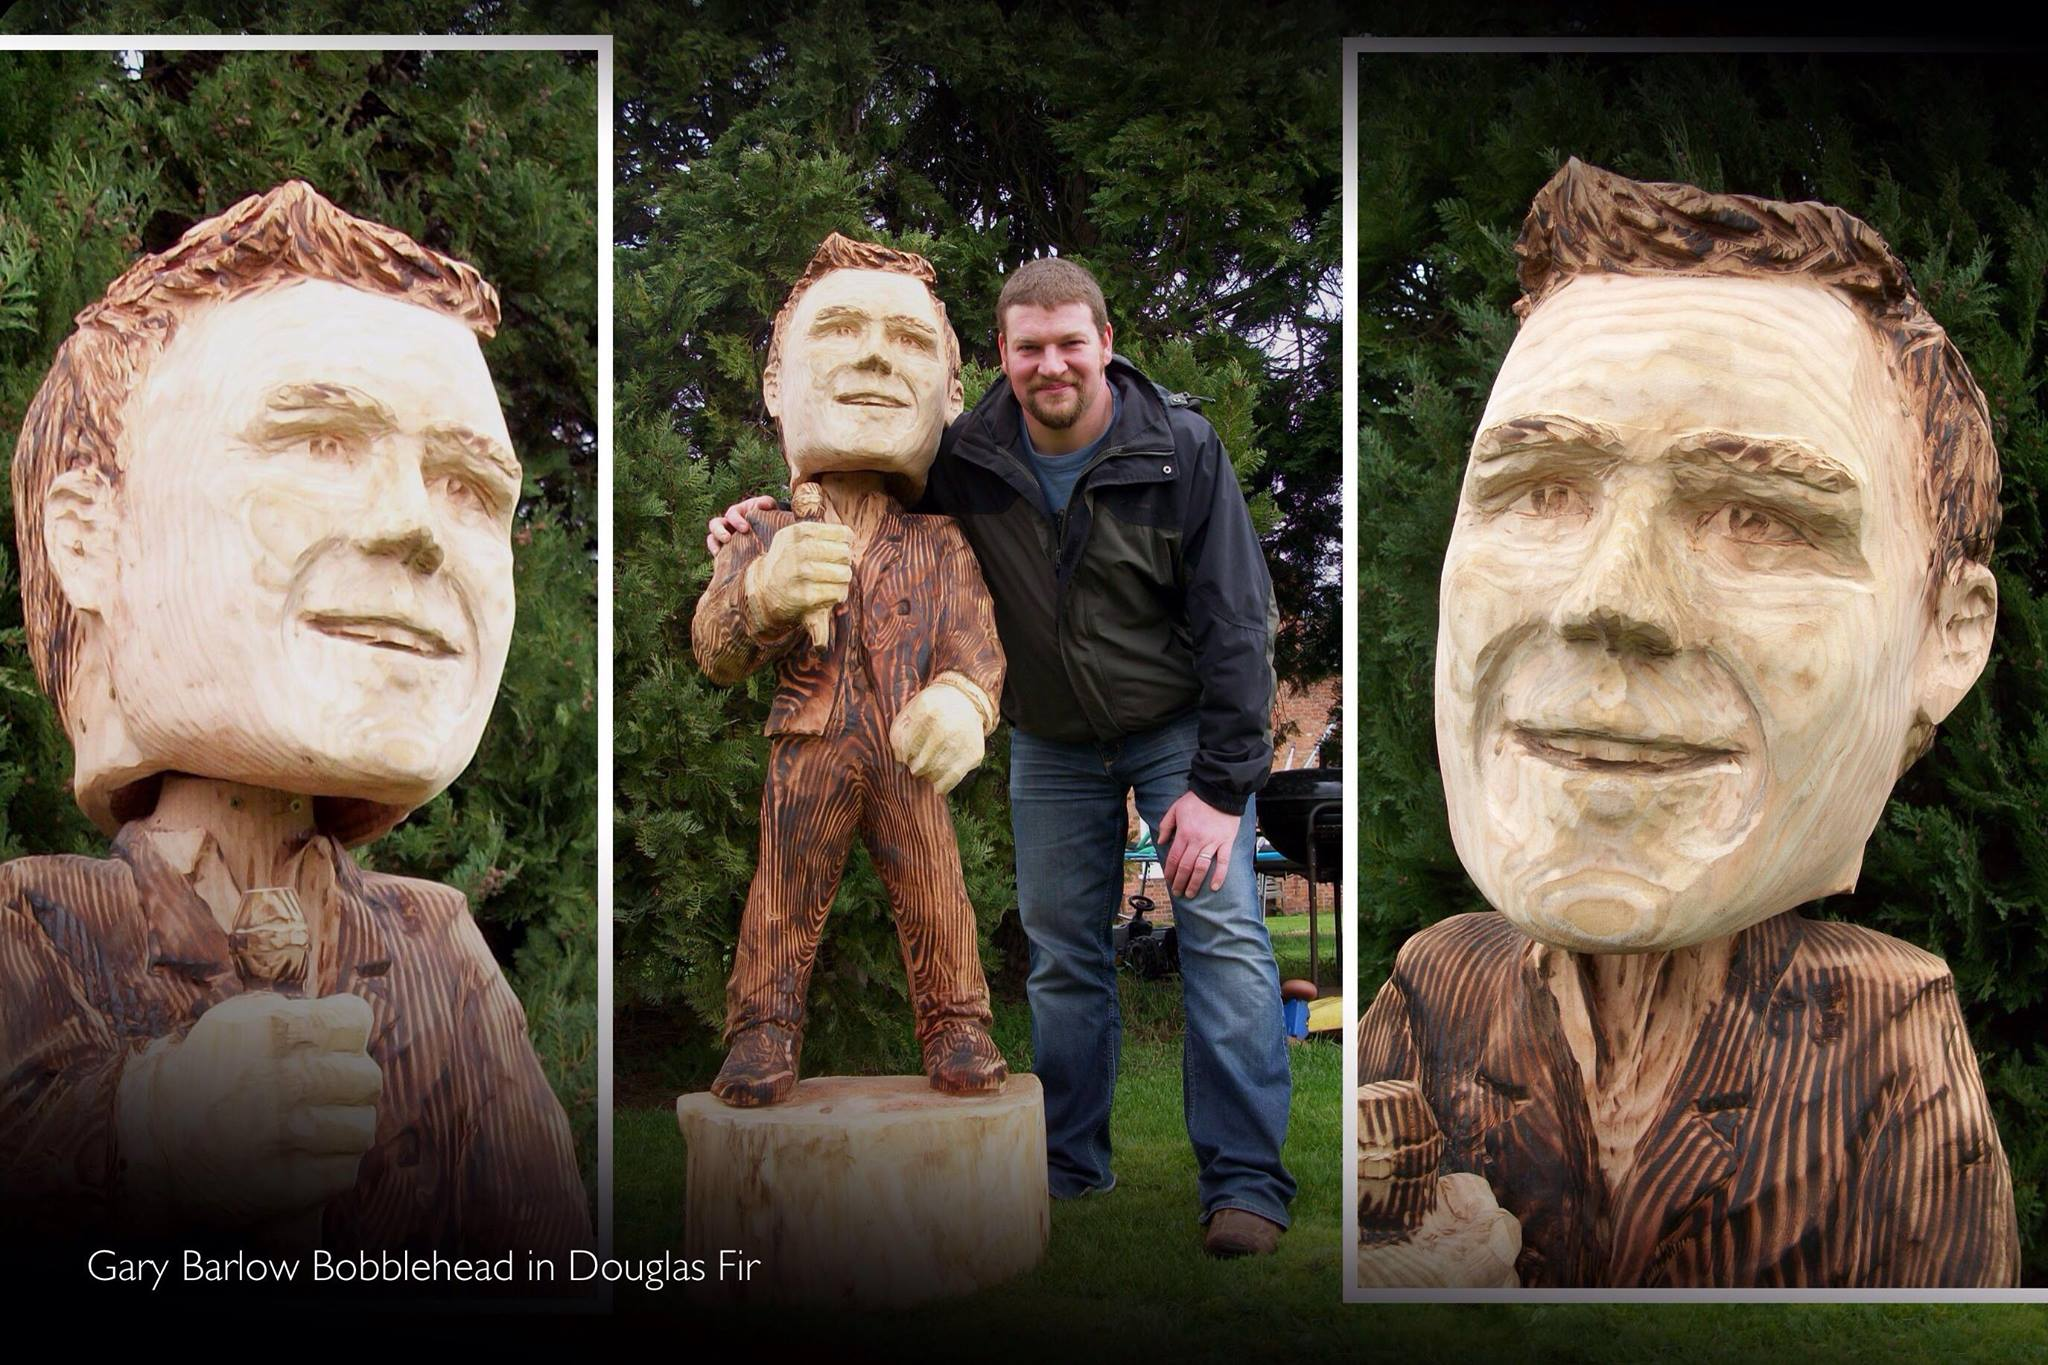 The perfect portrait for you, your space and your preferences might be something fun like this bobblehead sculpture of Gary Barlow. In the photo simon o'rourke is pictured with three shots of a full size sculpture of gary barlow with a disproportionately large head!